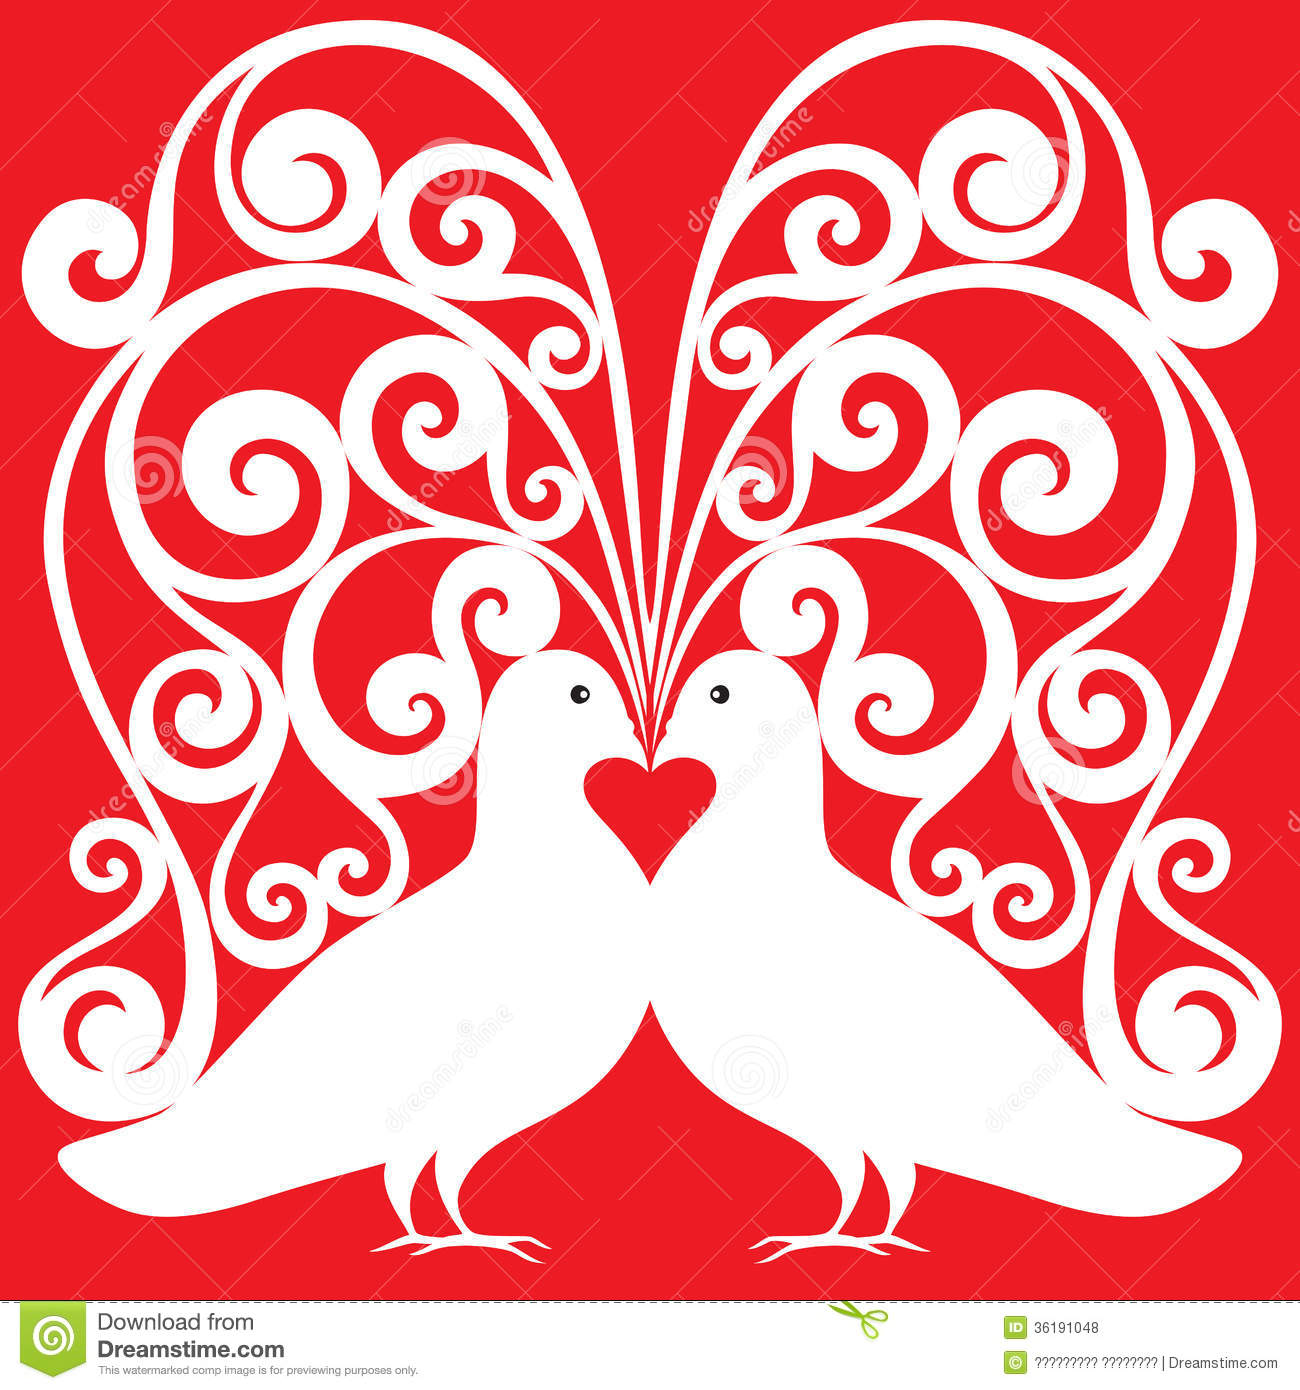 White doves pair kissing pattern with a heart symb royalty for Love design